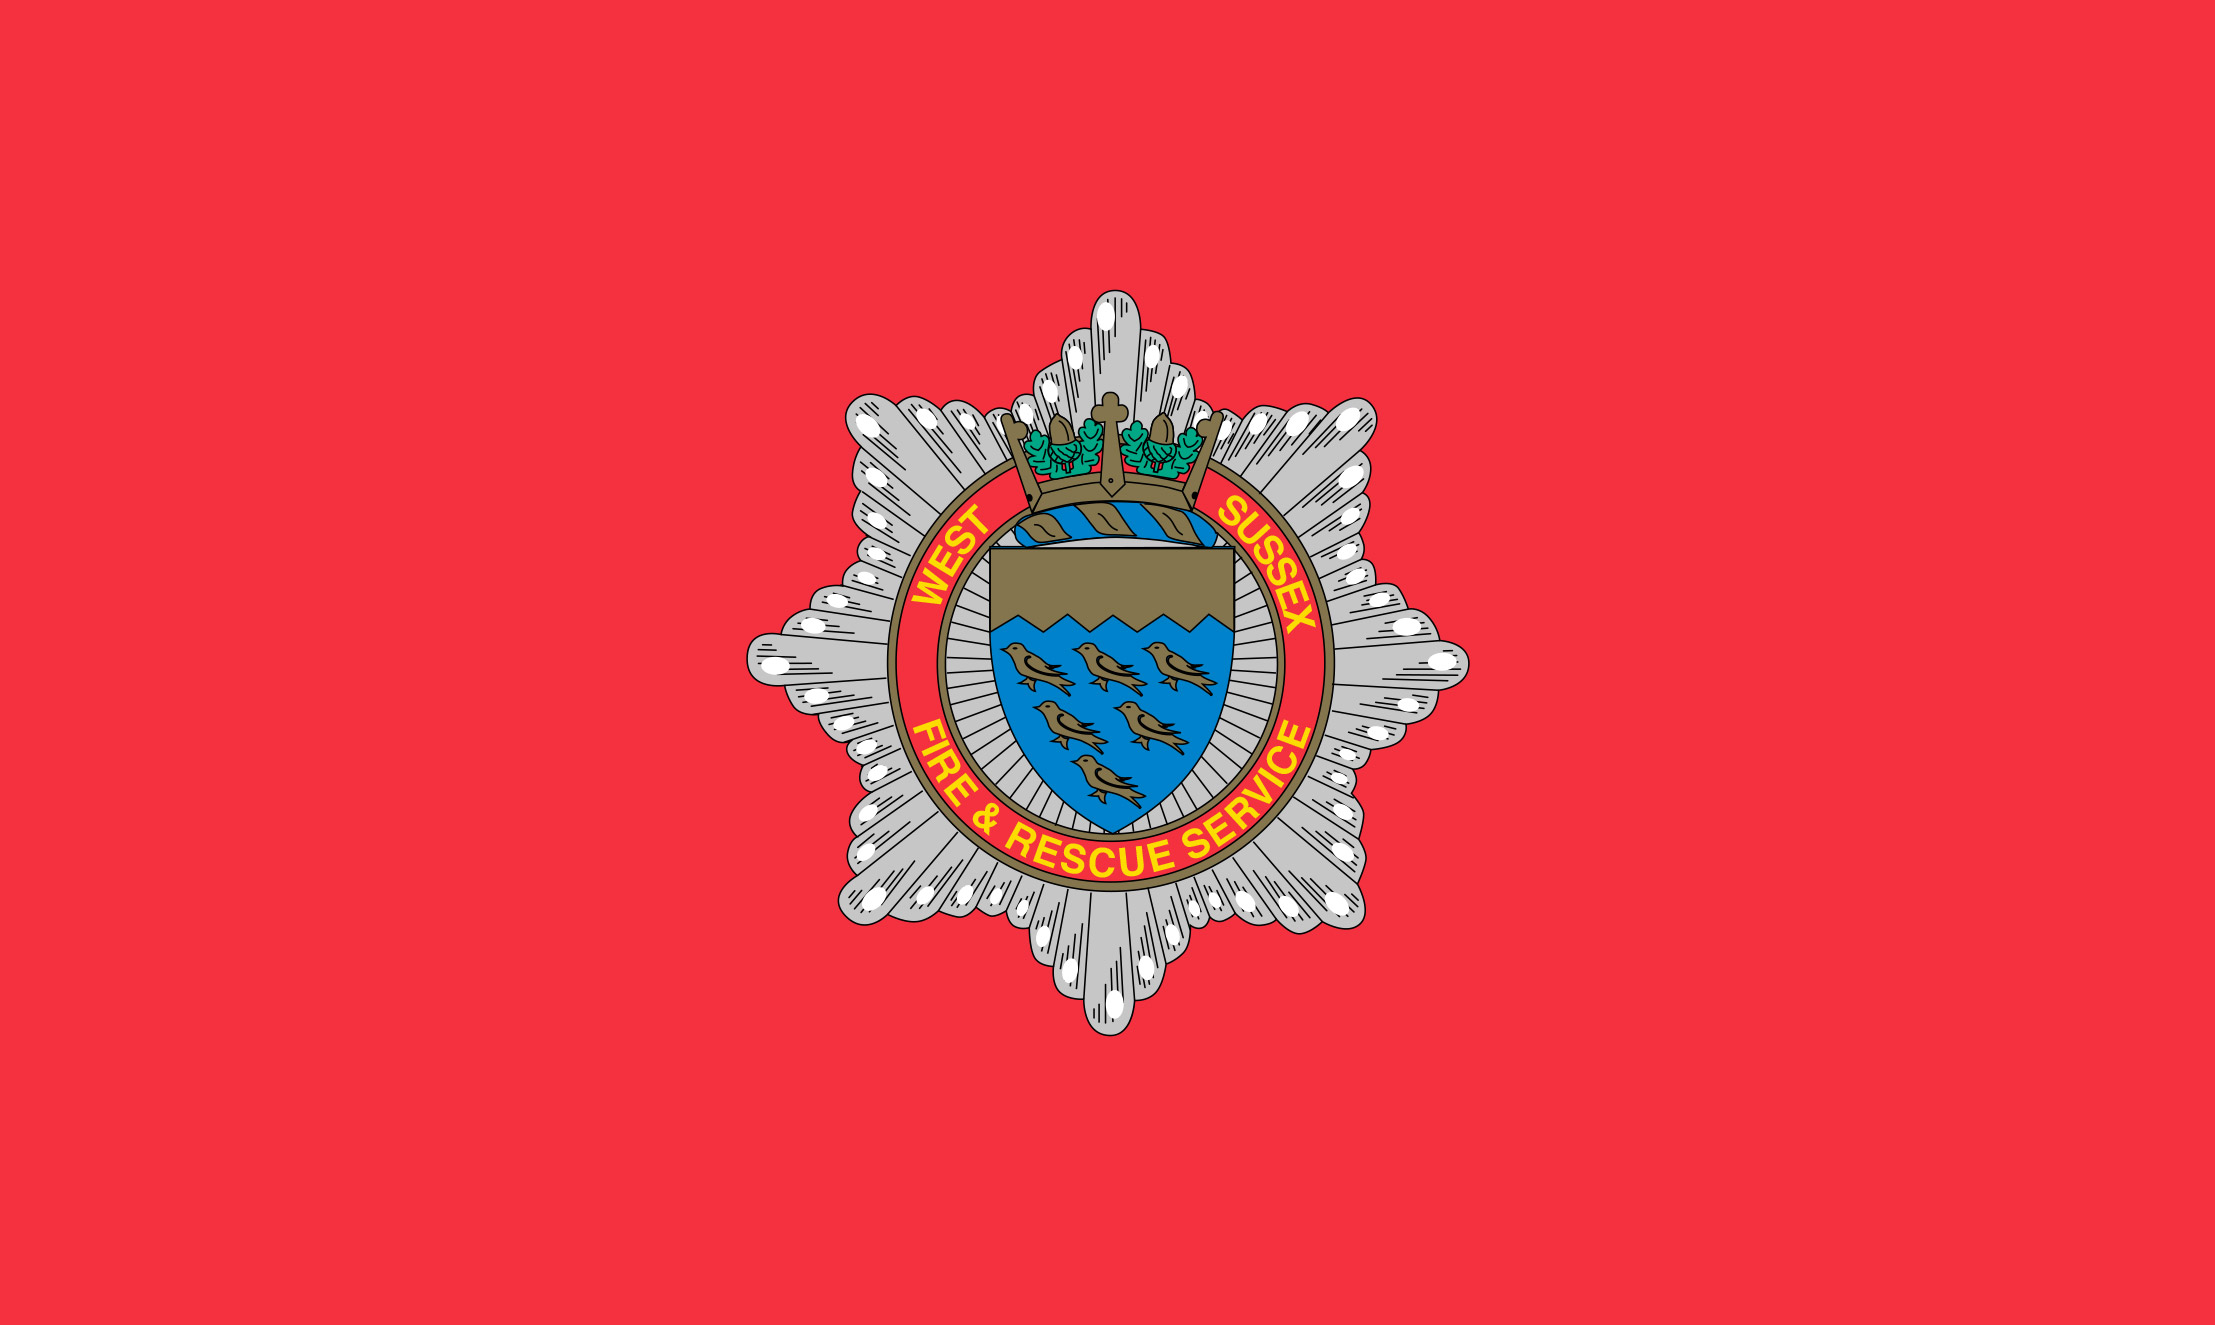 West Sussex Fire Service Badge